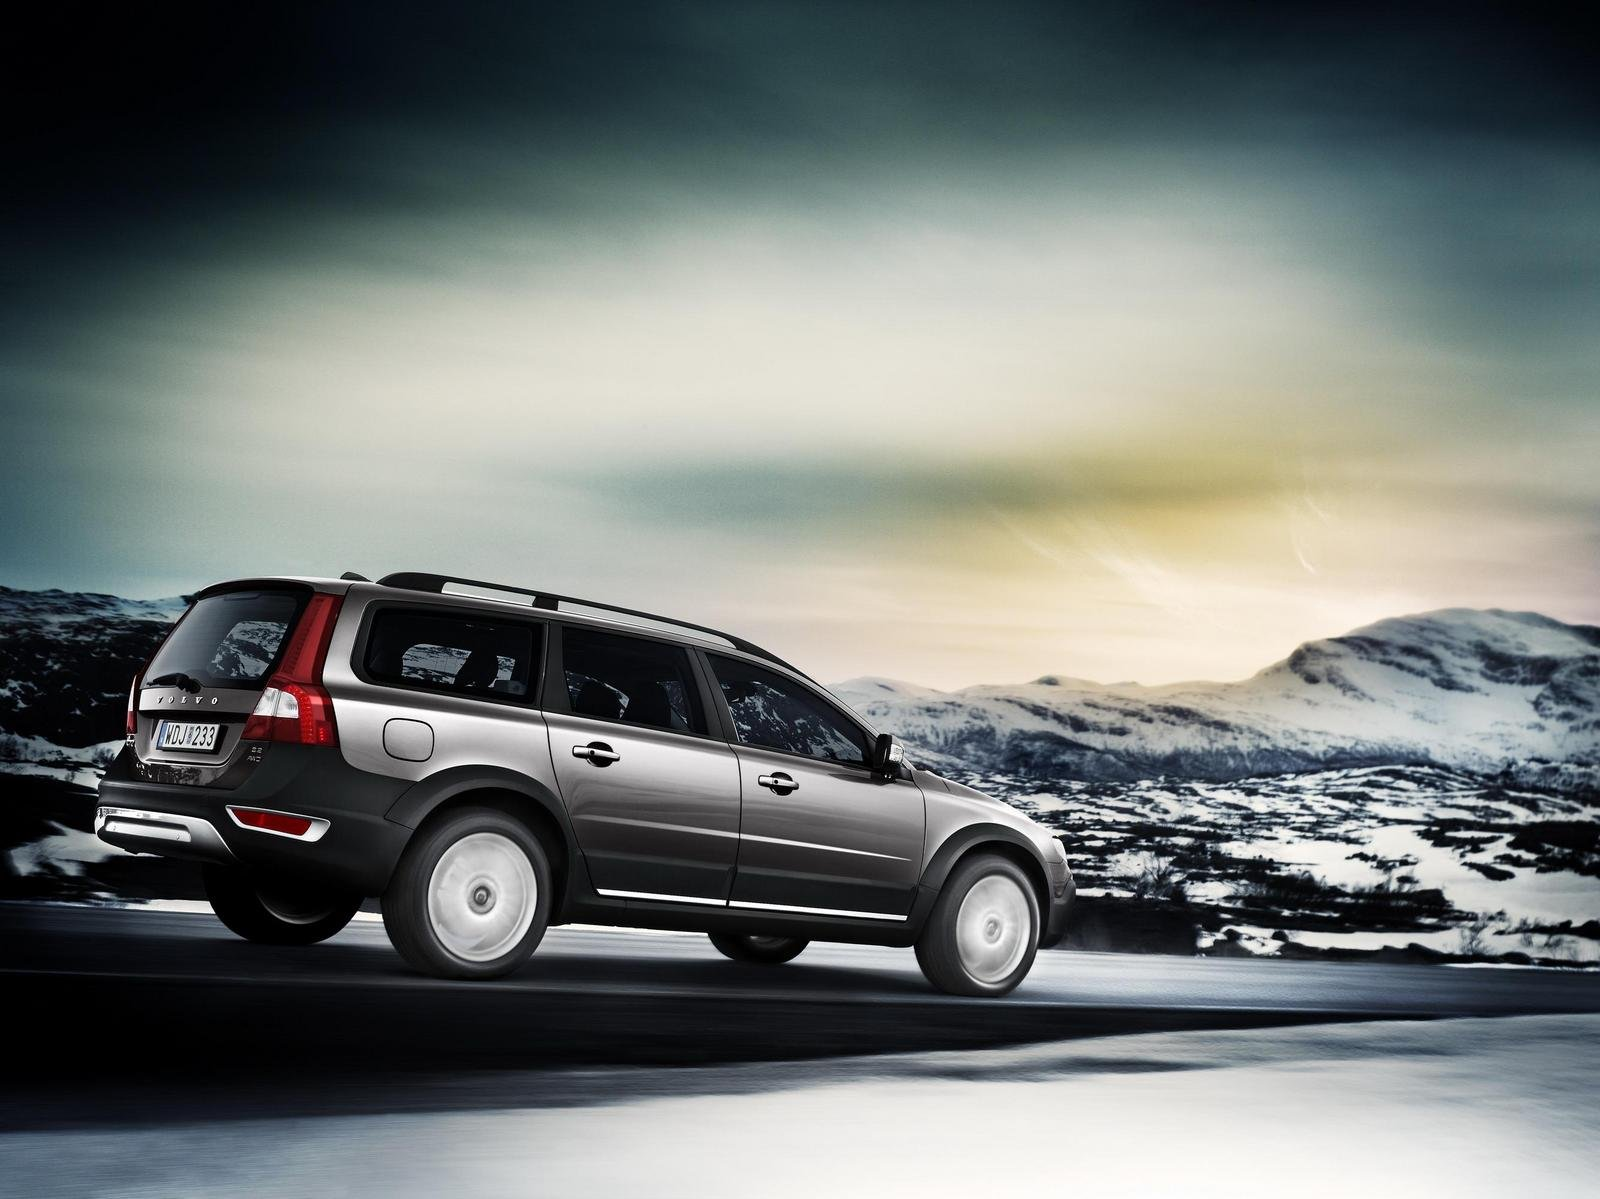 2008 volvo xc70 and s80 winter edition picture 227886 car review top speed. Black Bedroom Furniture Sets. Home Design Ideas